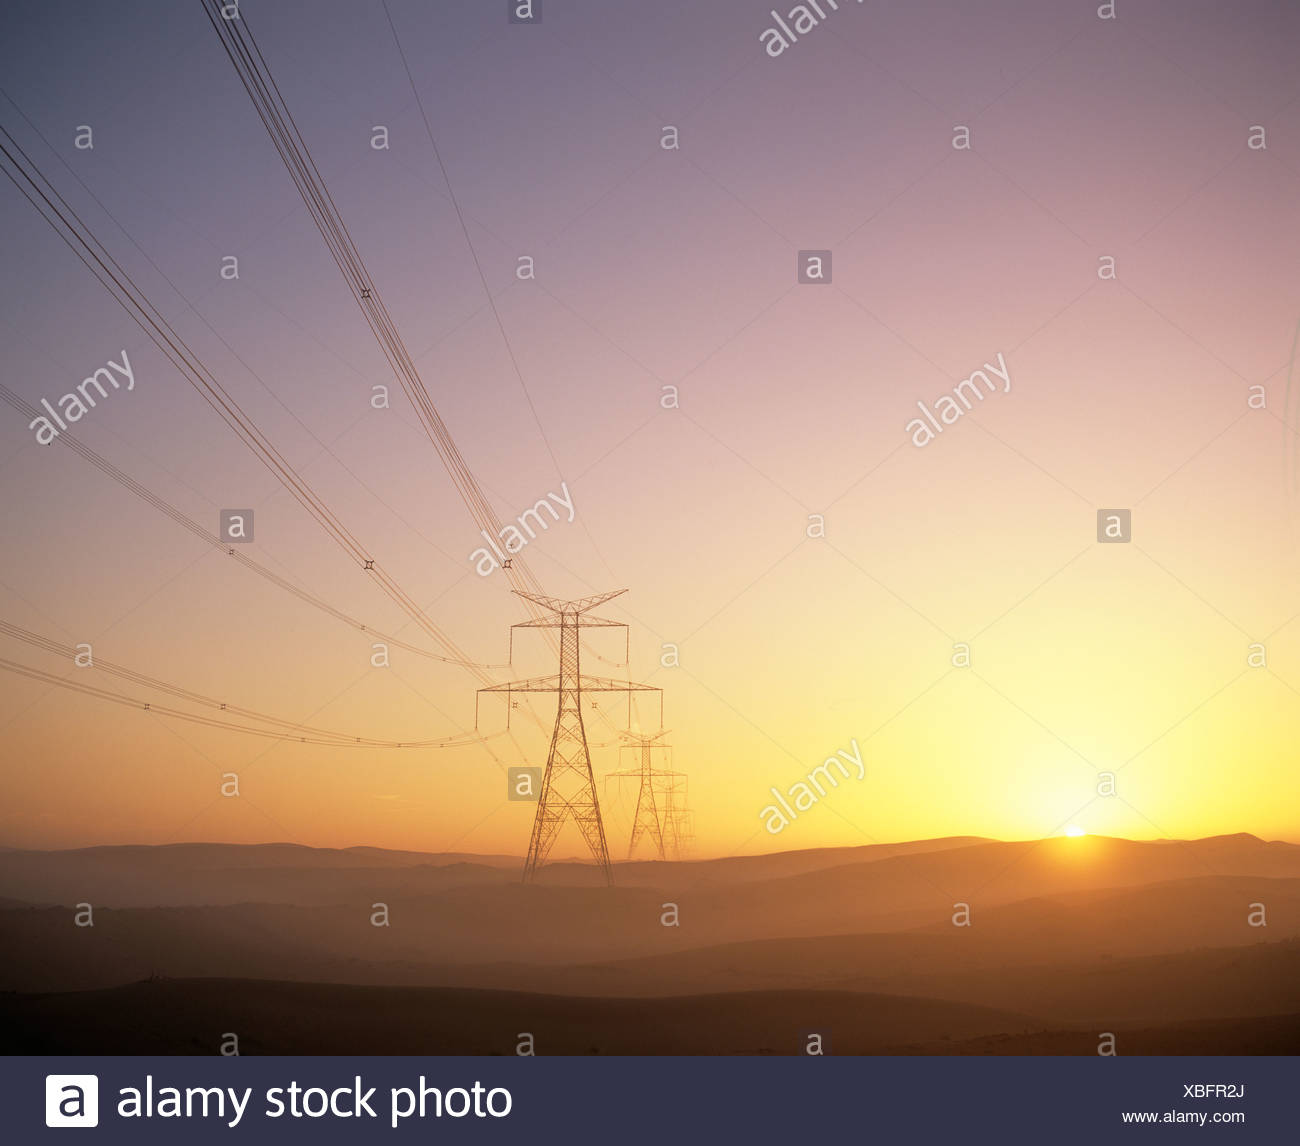 Electricity pylons at sunset in a desert.Photographed in the United Arab Emirates. - Stock Image